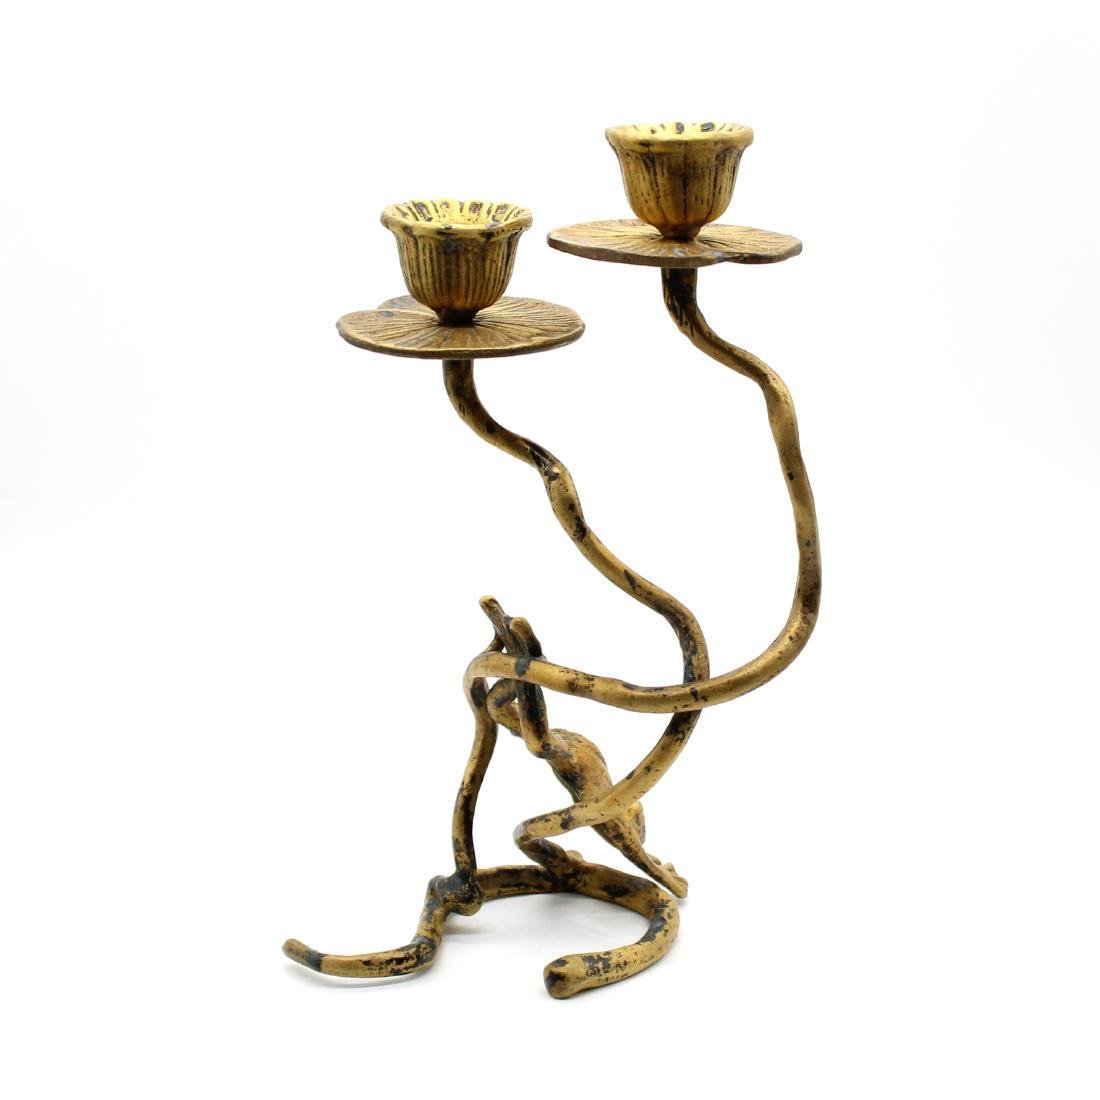 Vintage Brass Leaping Frog & Lily Pad Candle Holder - 4